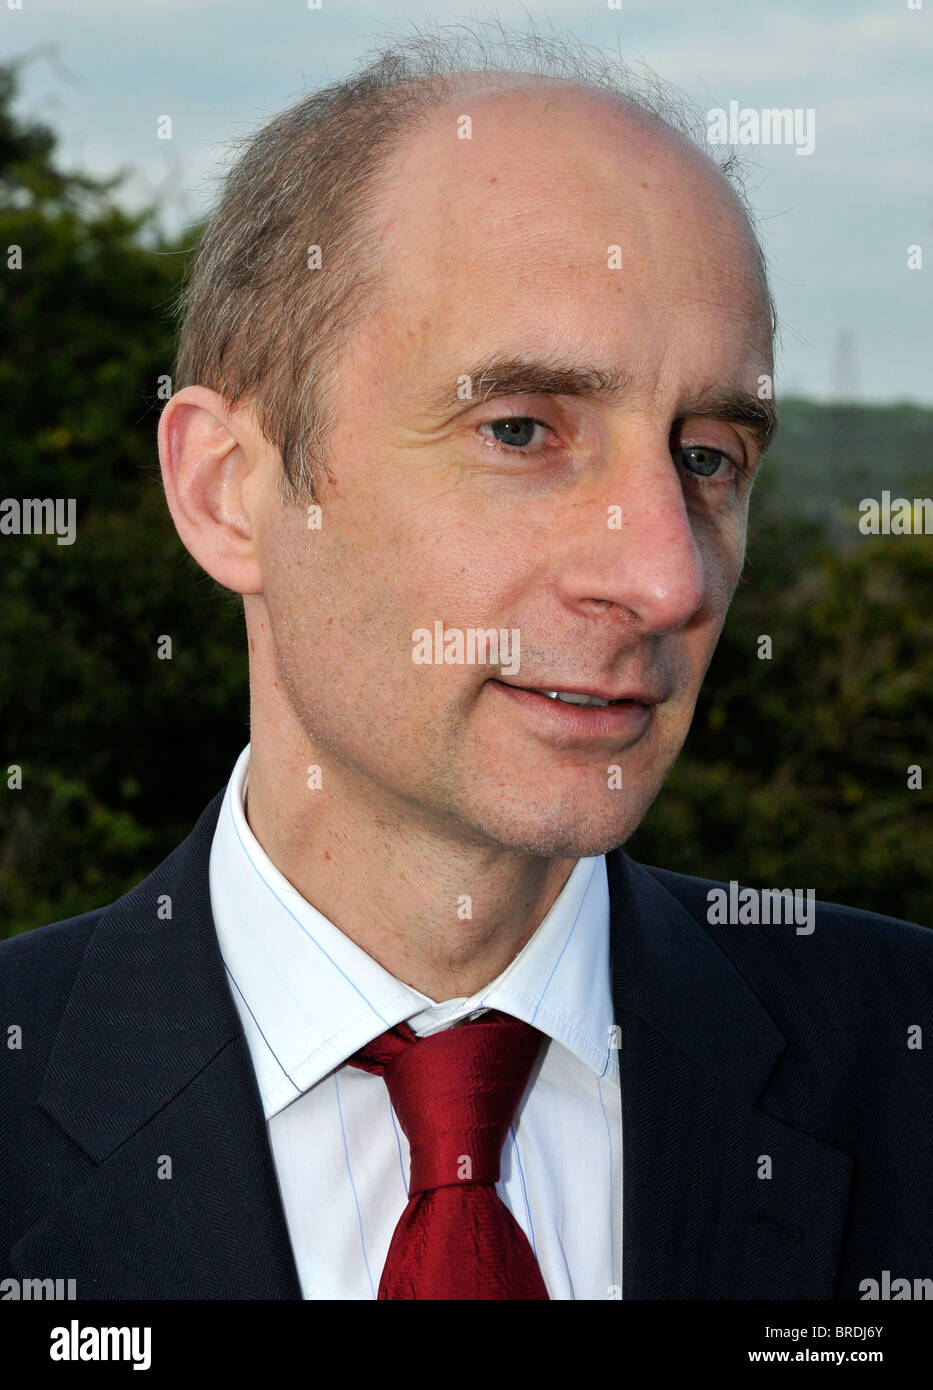 Lord Adonis, Lord Andrew Adonis, Labour politician - Stock Image